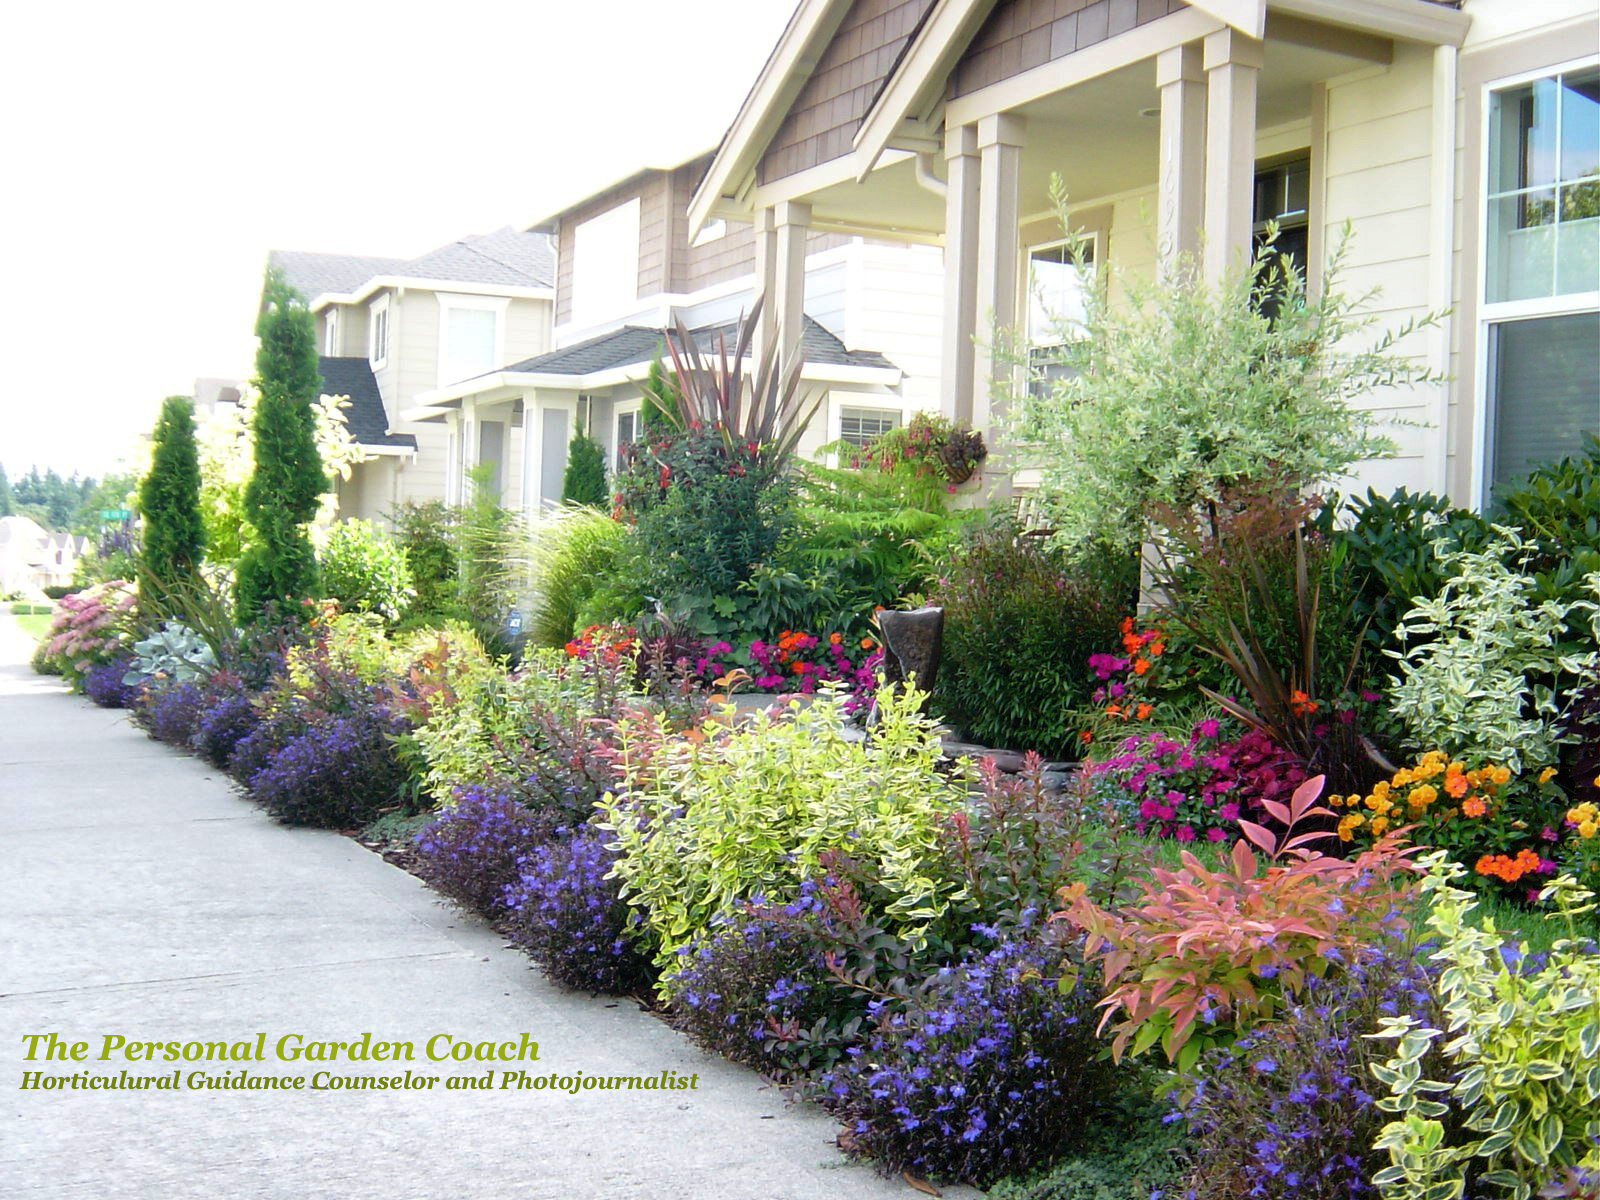 Curb appeal the personal garden coach for Curb appeal landscaping